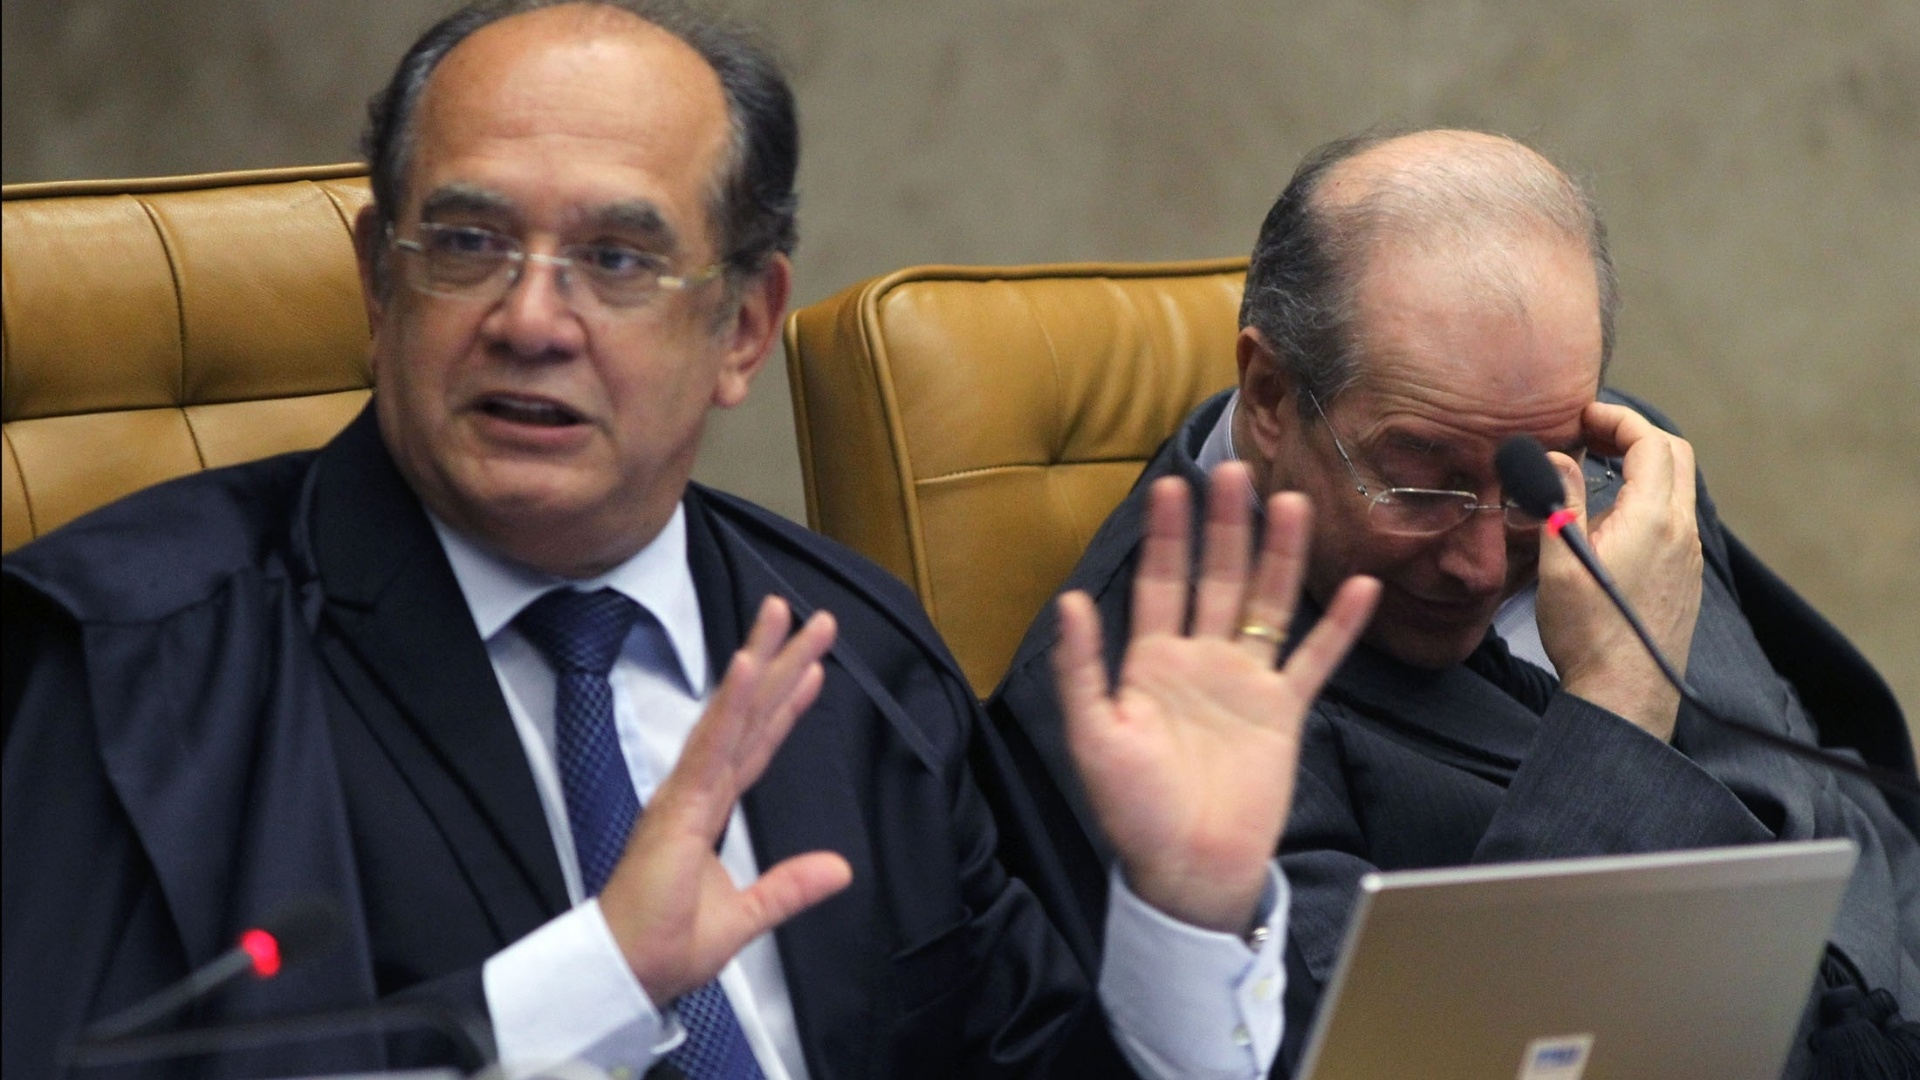 10.dez.2012 - O ministro do STF Gilmar Mendes ( esq.) e o ministro Celso de Mello participam de sesso de julgamento do mensalo na qual  discutida se cabe ao STF determinar a perda de mandato dos deputados condenados no processo